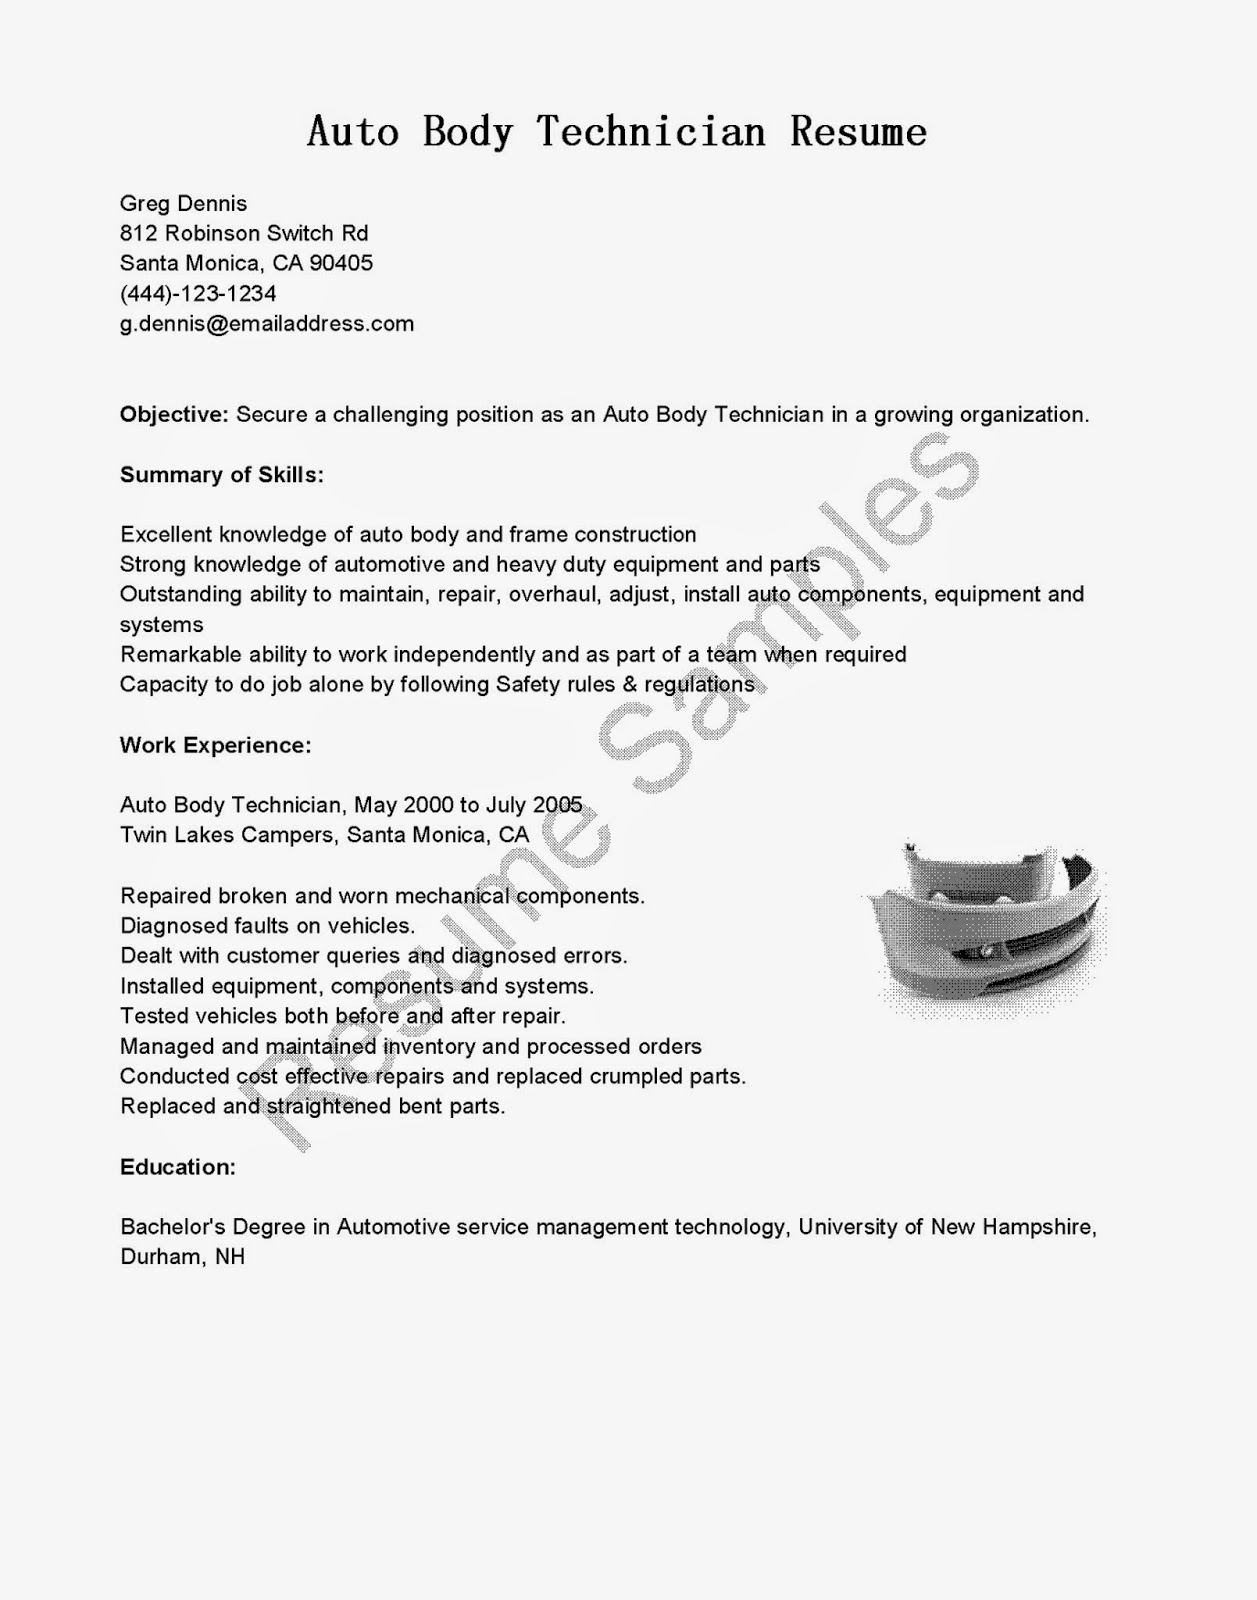 auto body technician resumes template auto body technician resumes